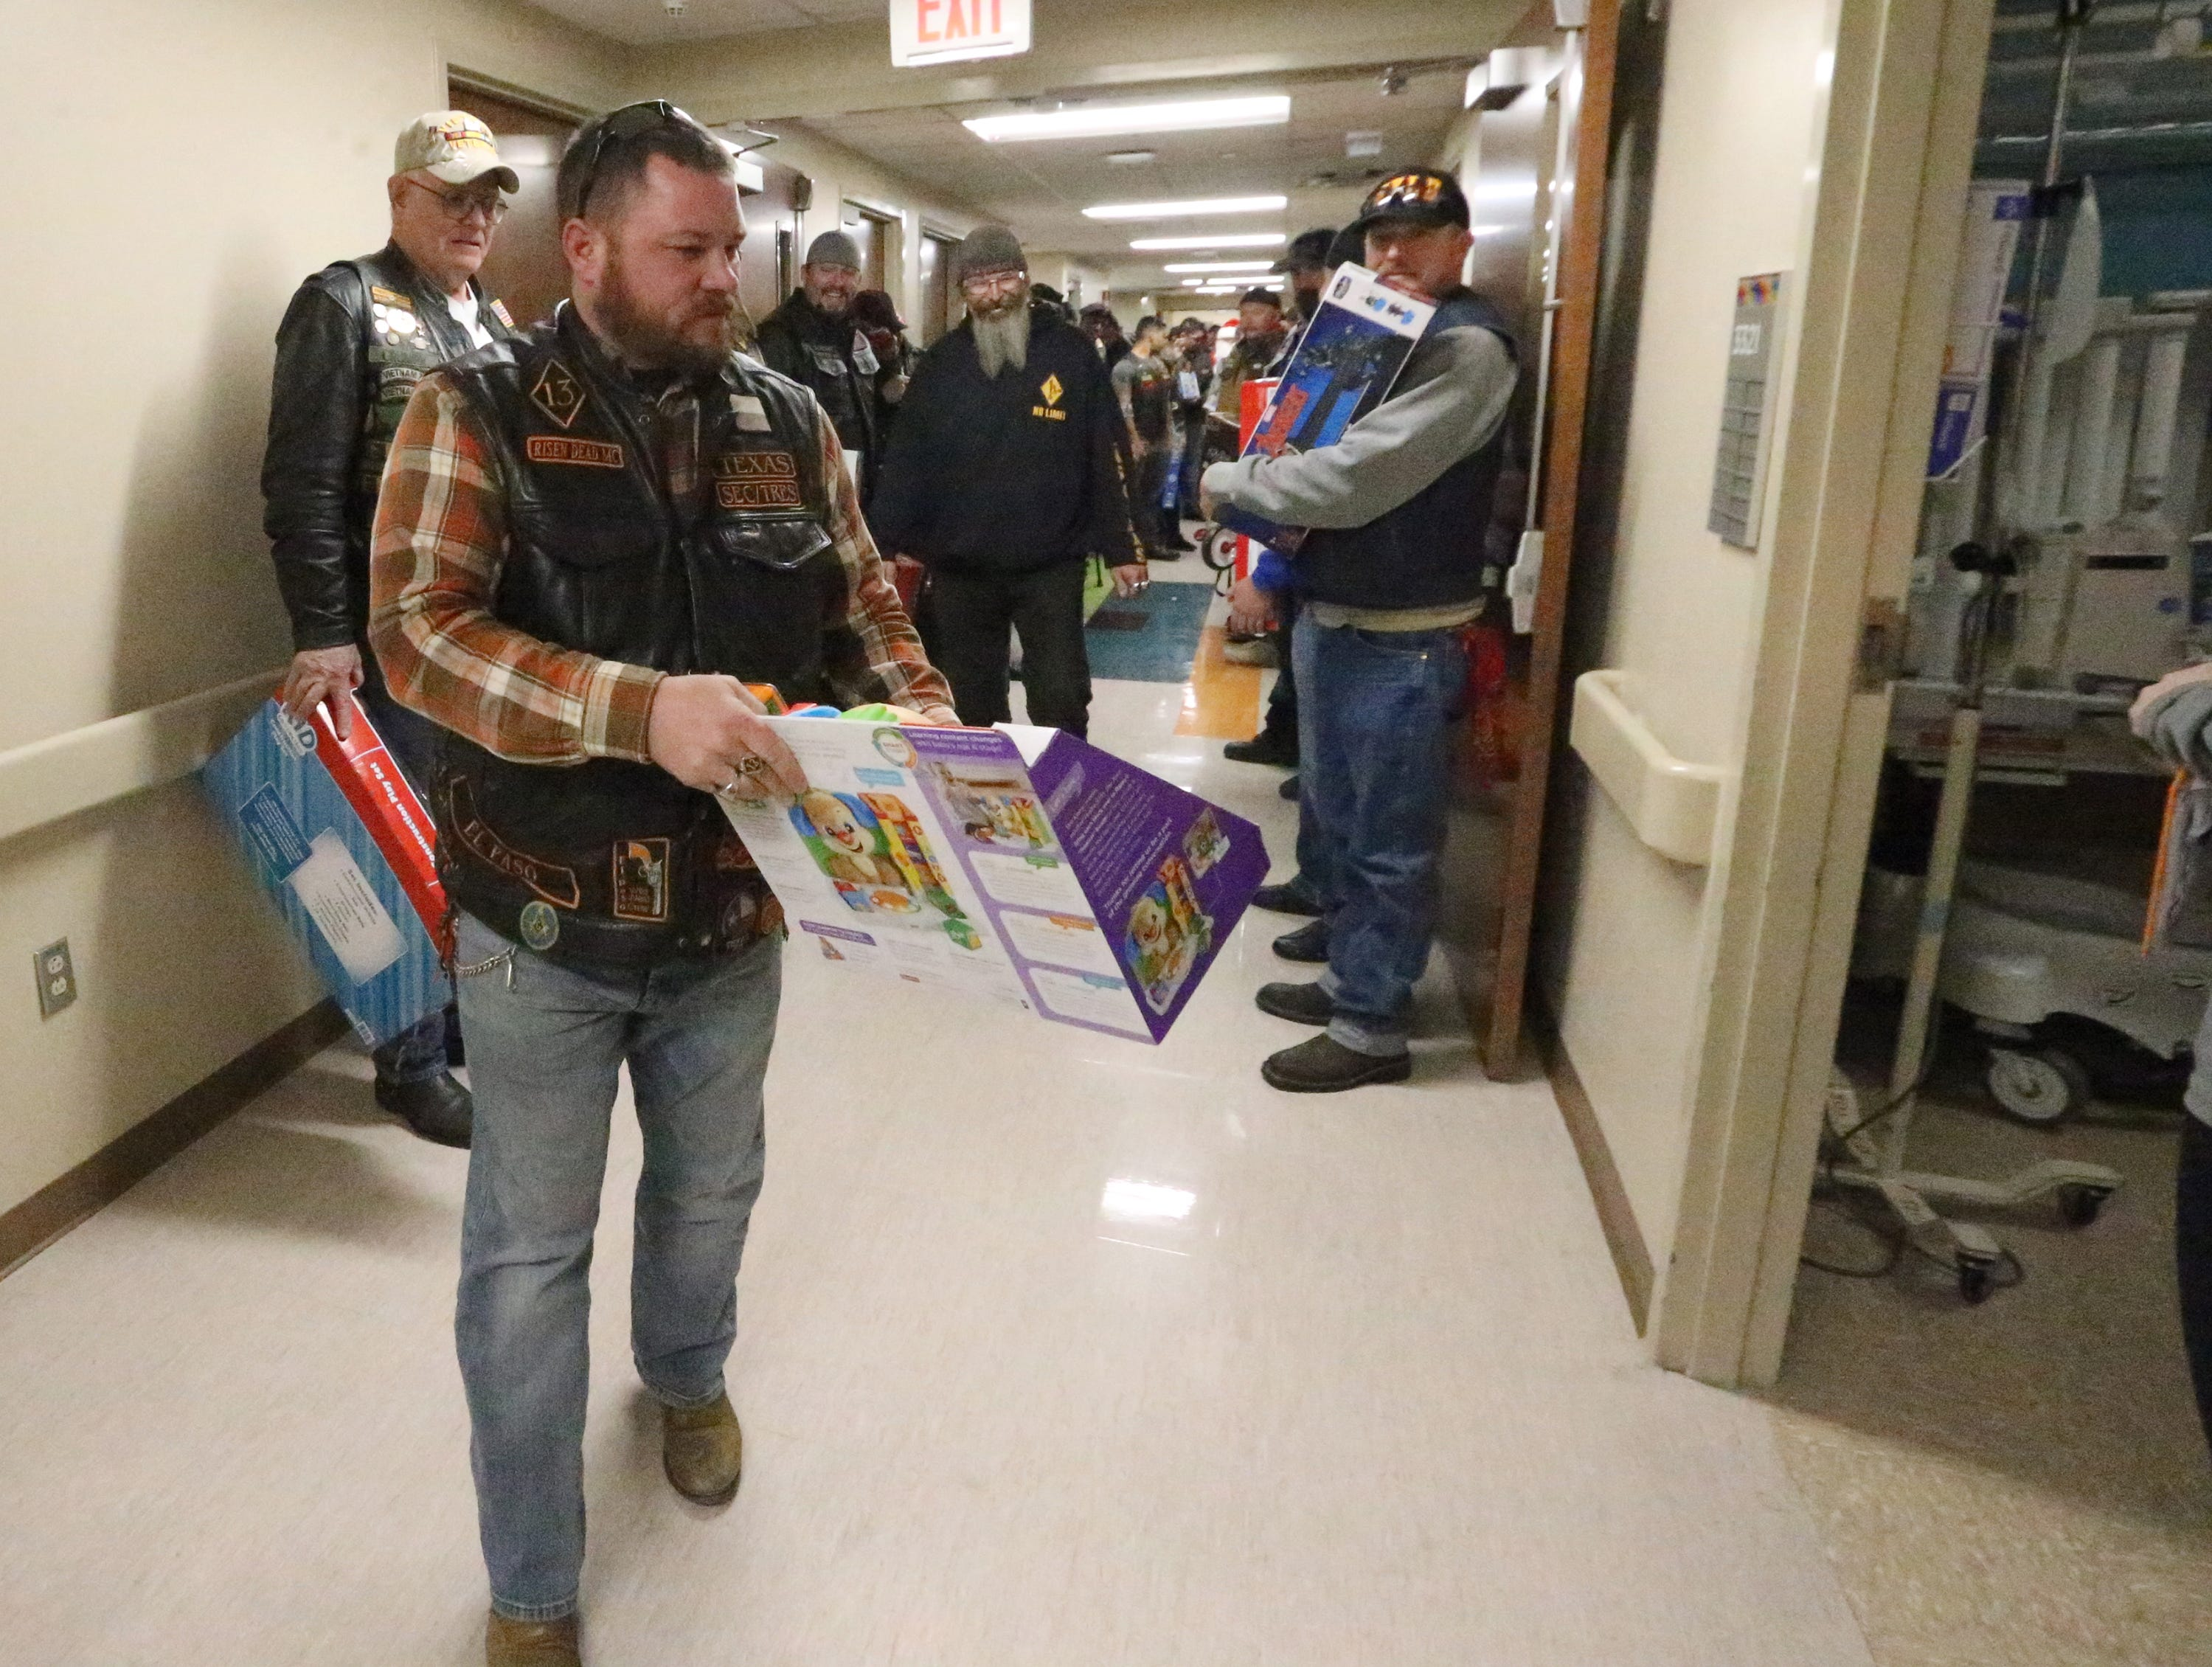 Members of the El Paso Motorcycle Coalition deliver toys to children at Providence Children's Hospital on Christmas Day.